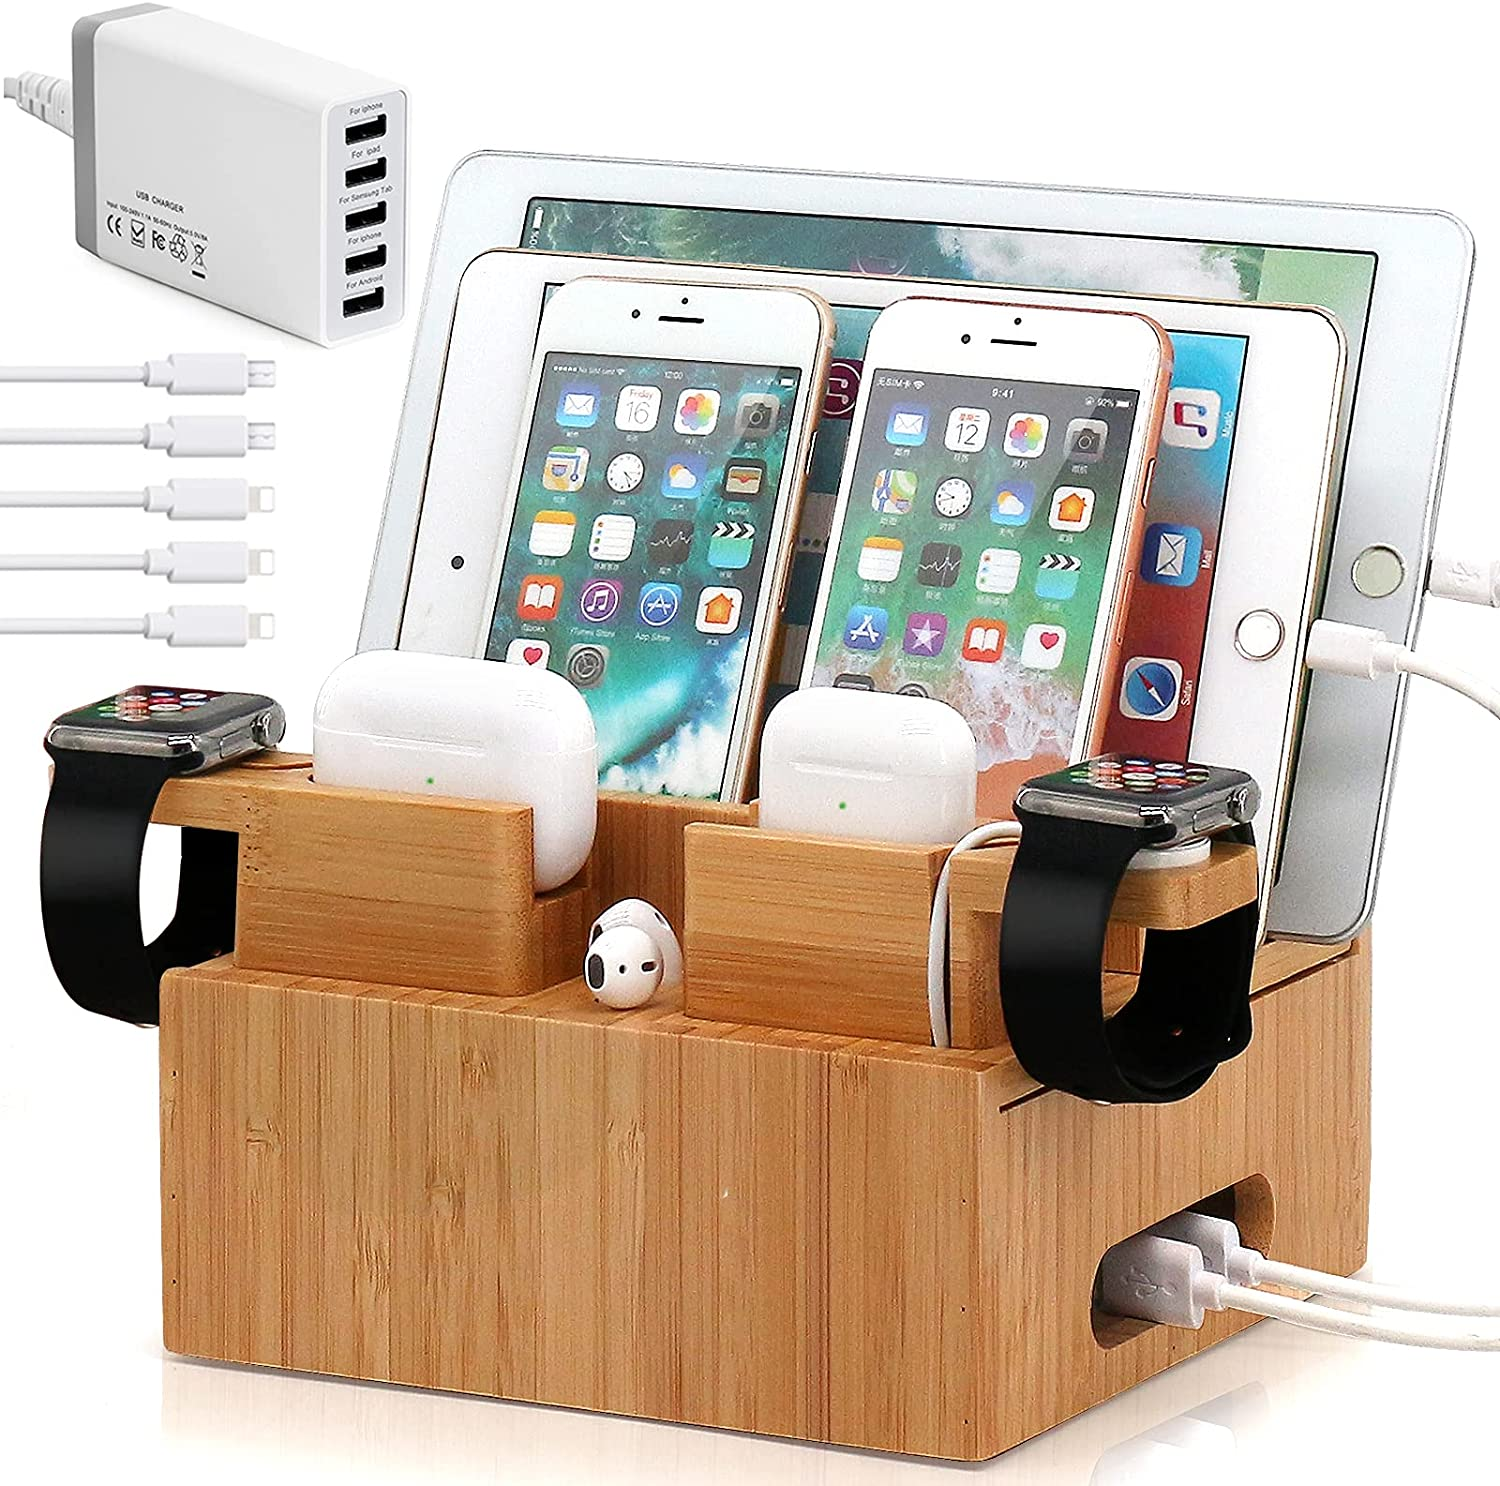 Bamboo Charging Station Organizer for Multiple Devices (Included 5 Port USB Charger, 5 Pack Charge & Sync Cable, with AirPod & iWatch Stand), Electronic Device Desktop Stations for Cell Phone, Tablet